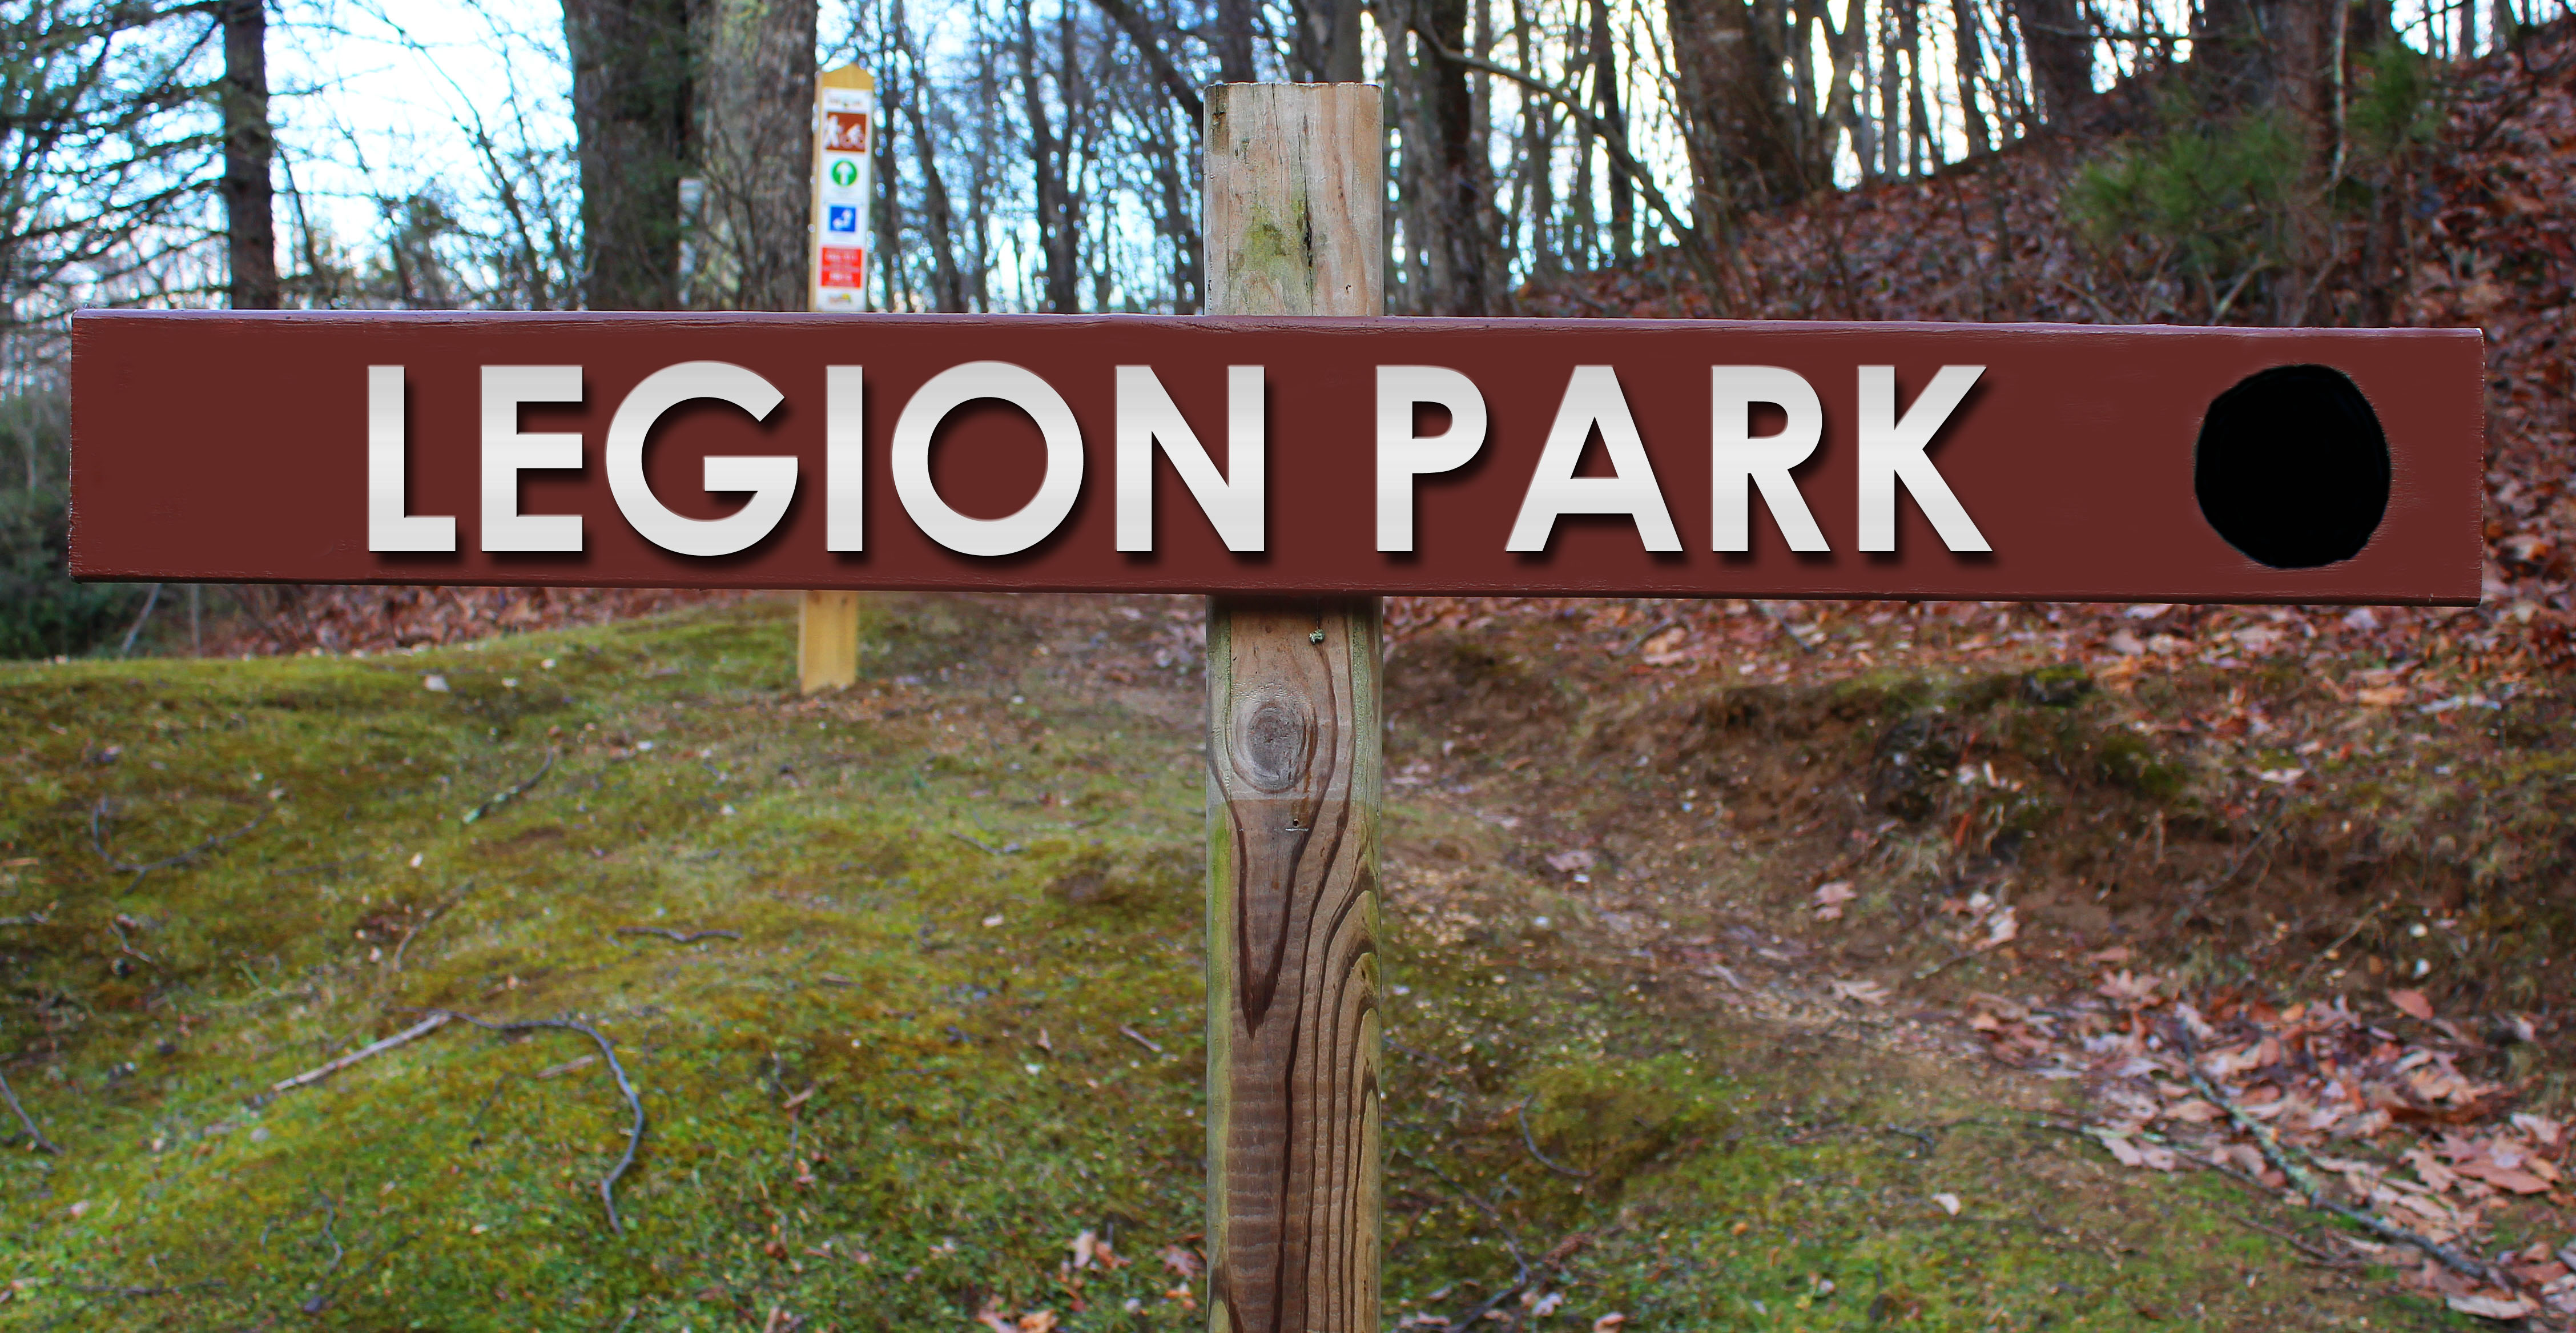 Picture of Legion Park trail sign